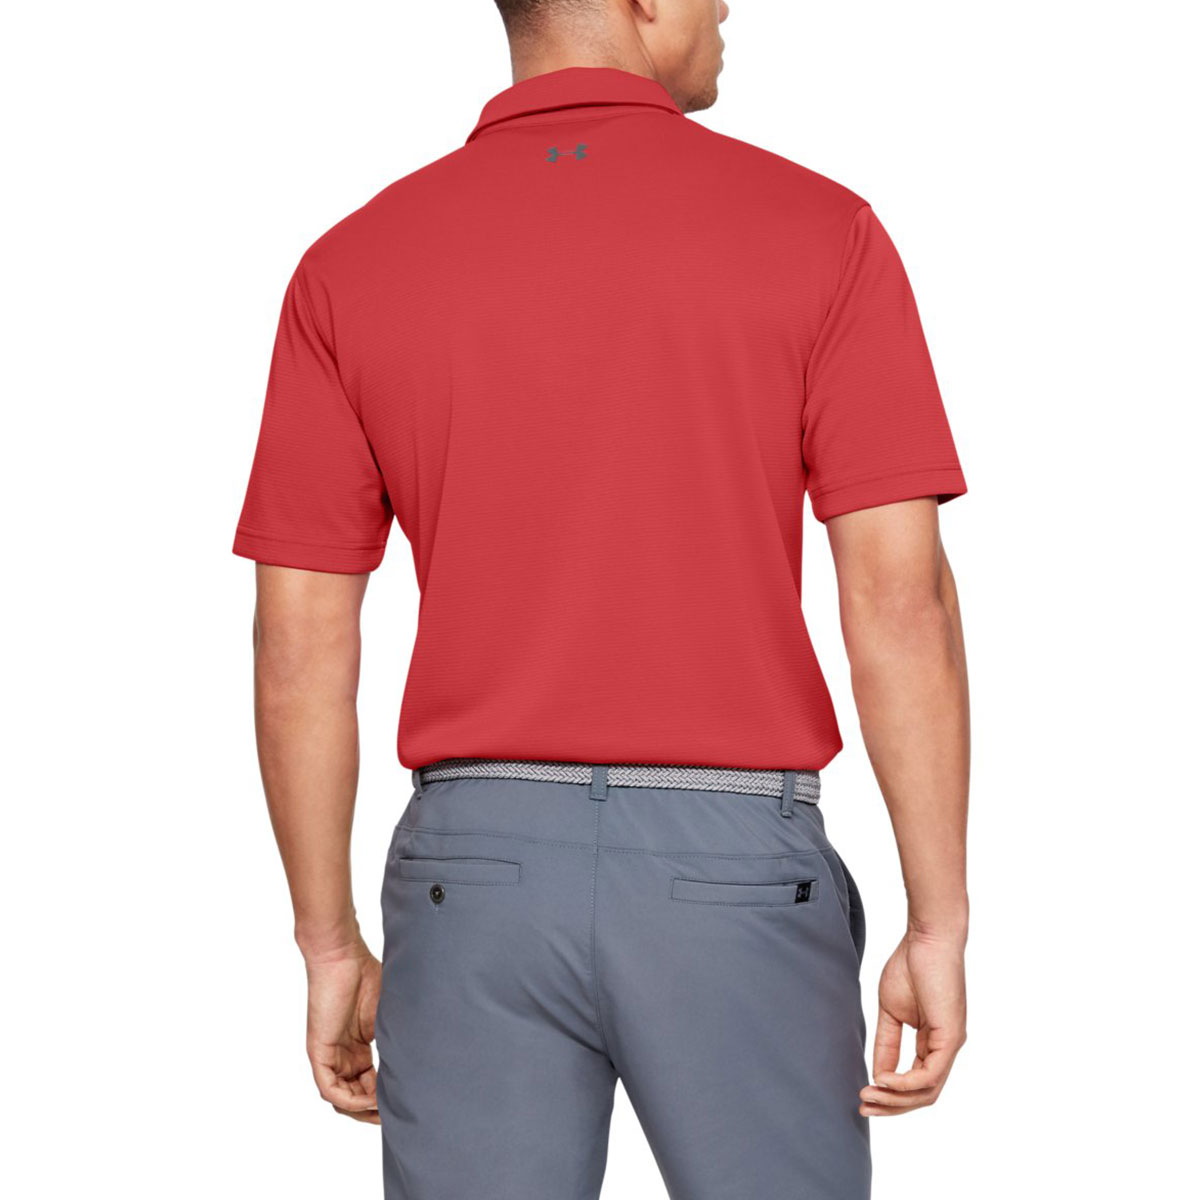 Under-Armour-Mens-Golf-Tech-Wicking-Textured-Soft-Light-Polo-Shirt thumbnail 51